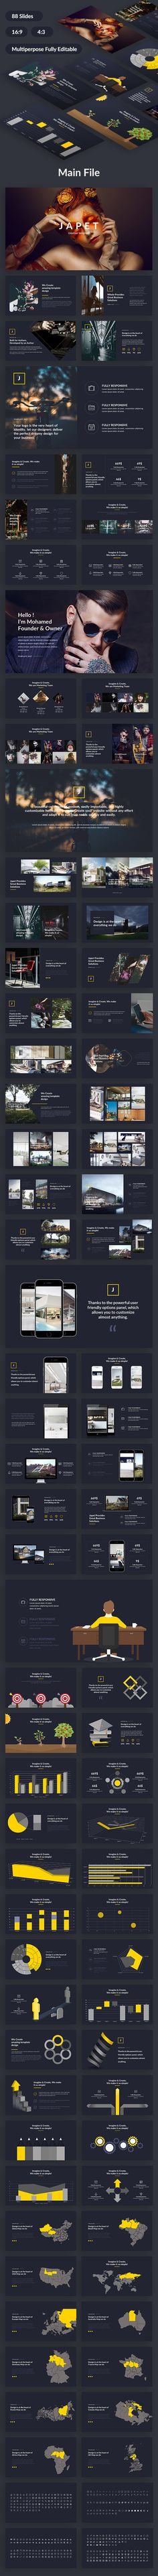 Japet Creative Design Google Slide Template